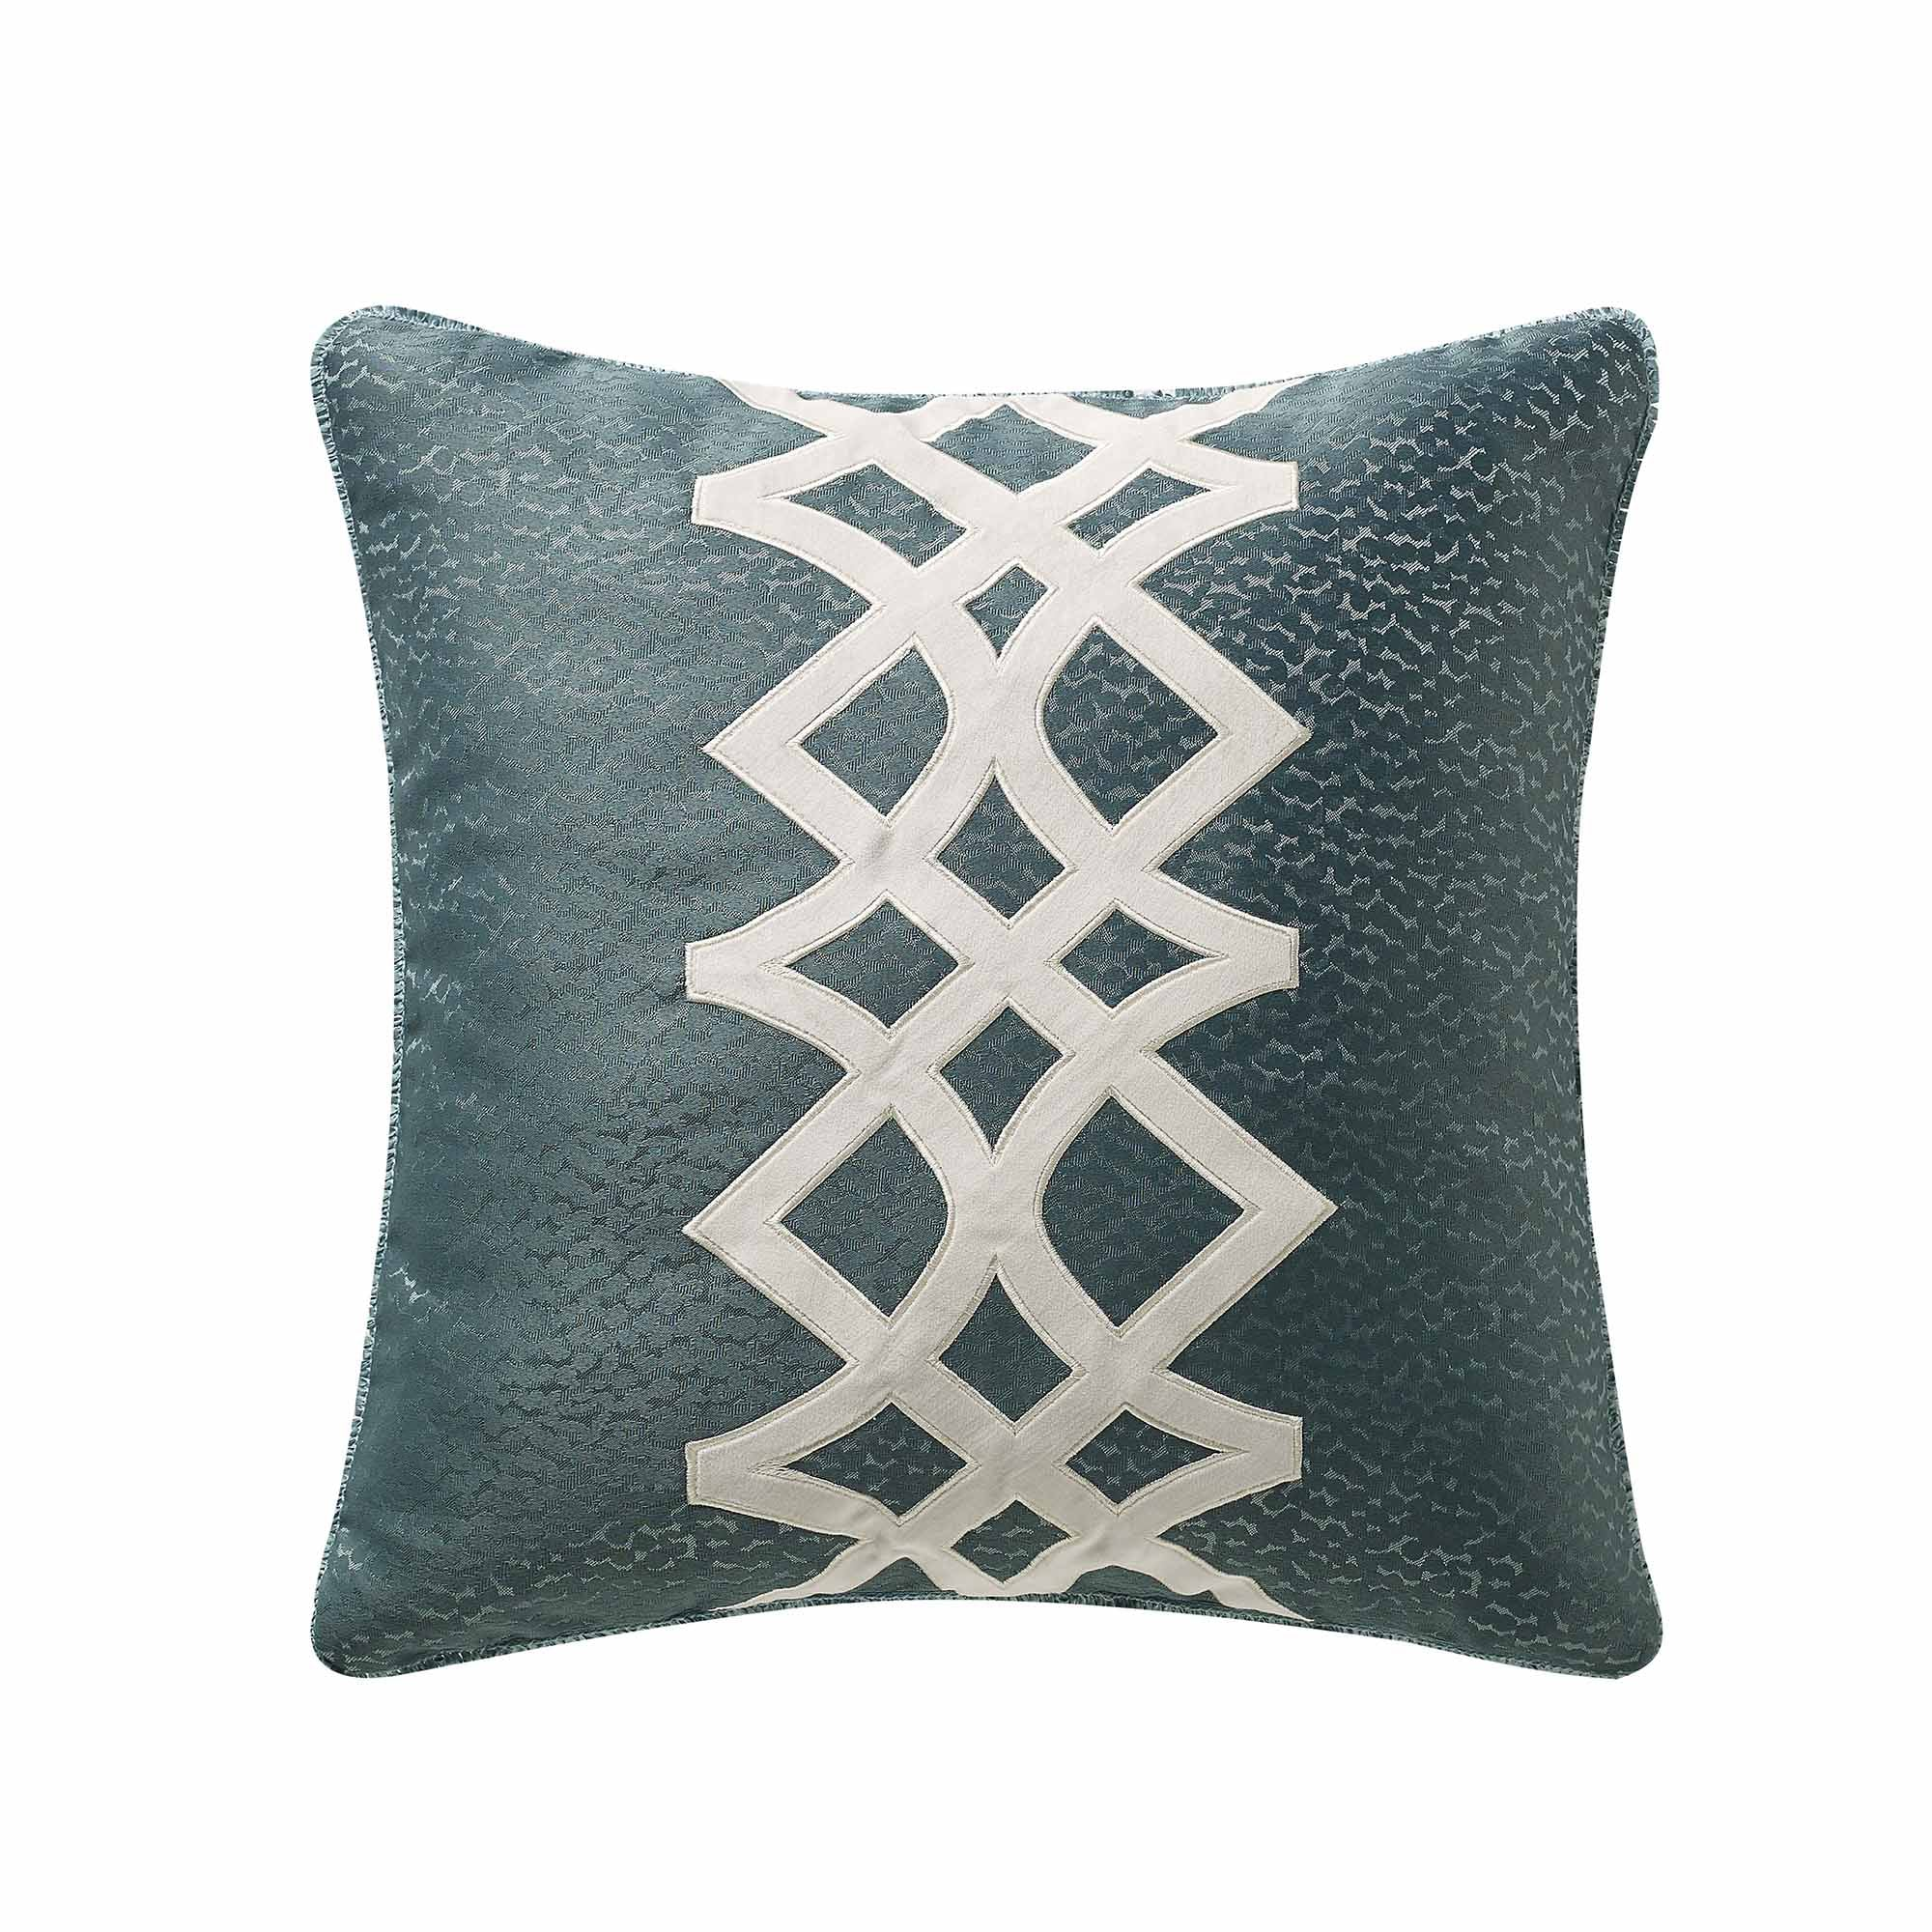 "Clarissa Blue Applique Throw Pillow 20"" x 20"" Throw Pillows By P/Kaufmann"